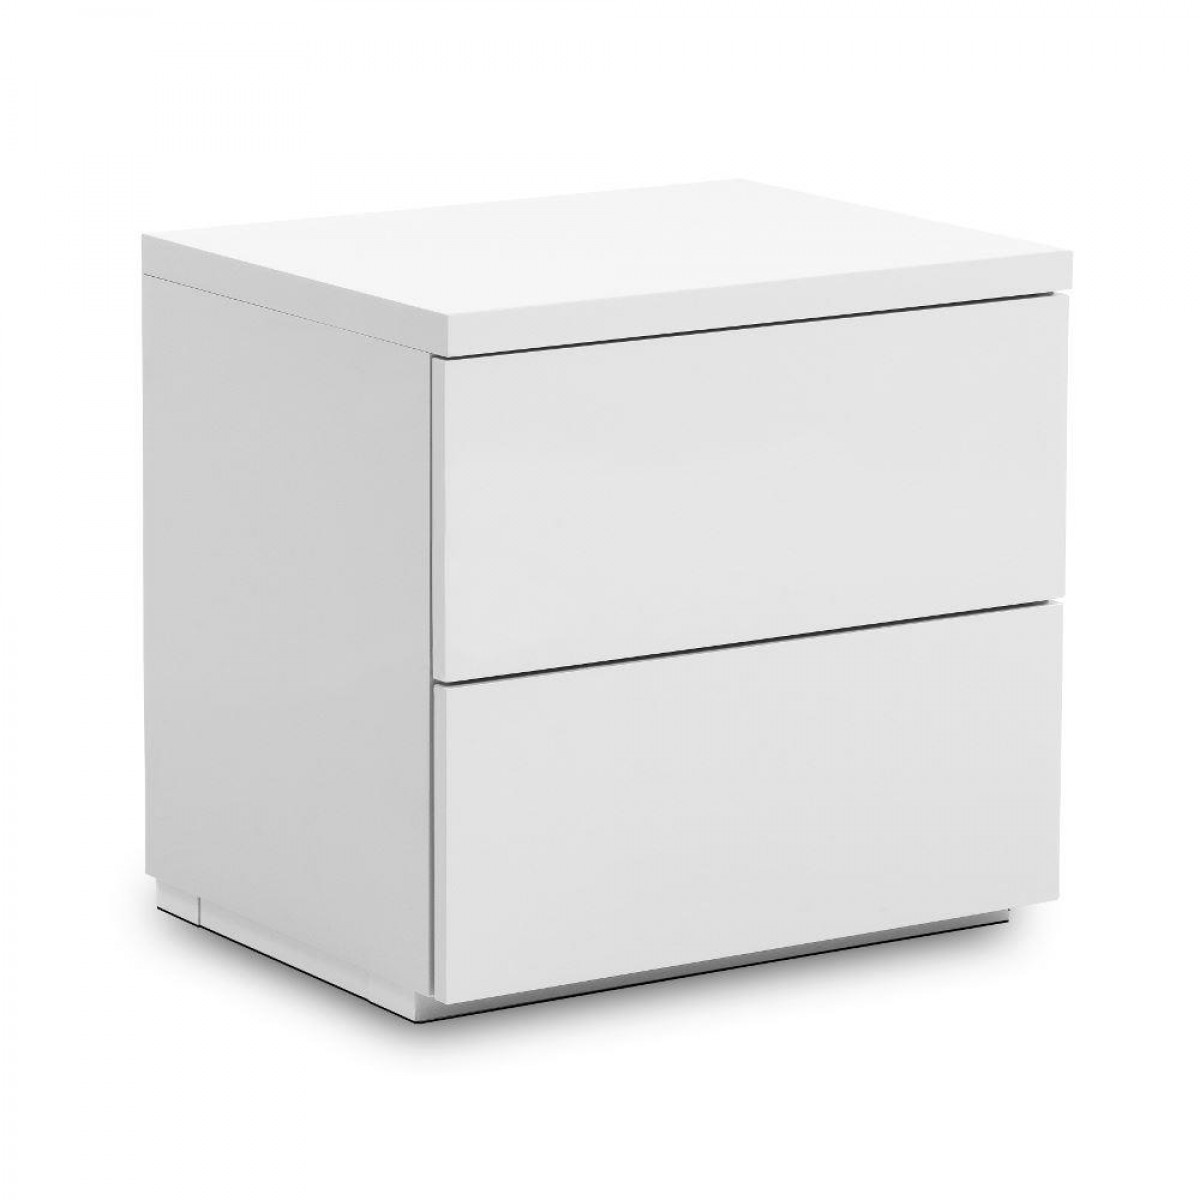 Monaco White Wooden High Gloss 2 Drawer Bedside Table